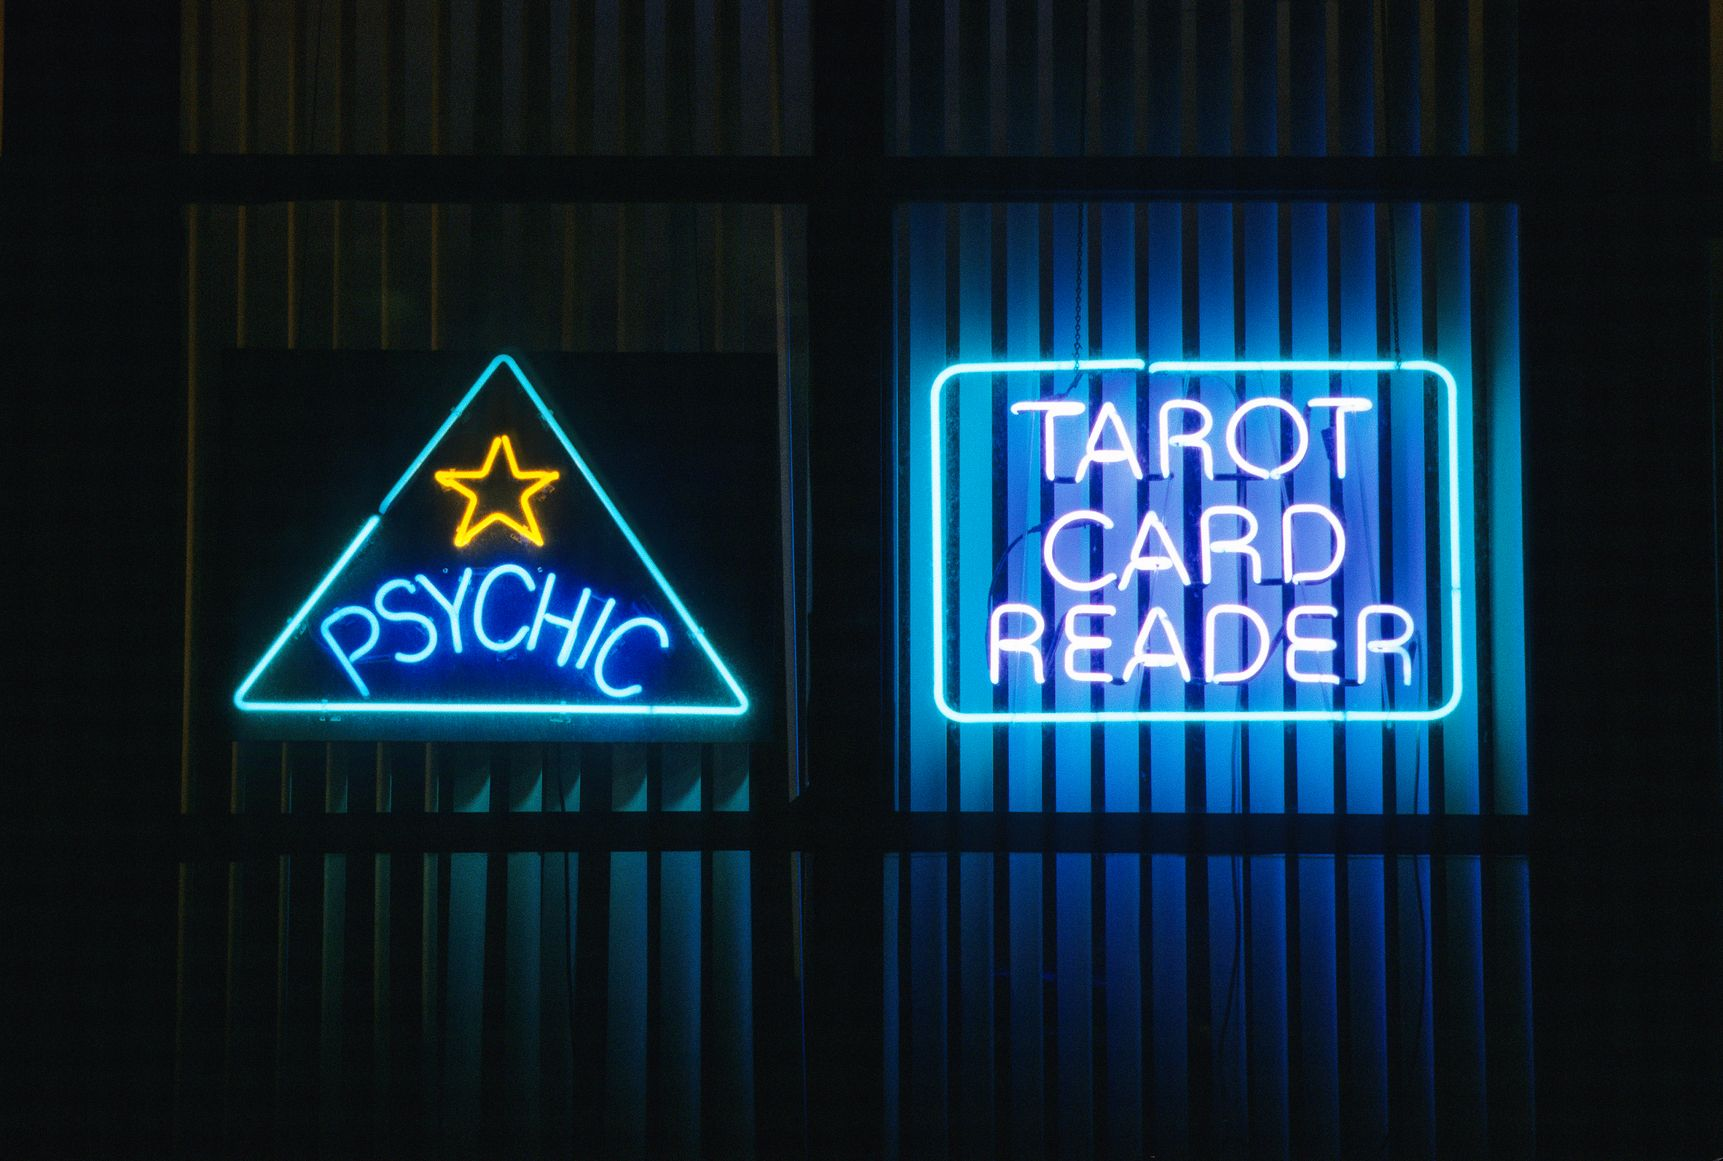 I Was an Online Professional Tarot Card Reader for a Year